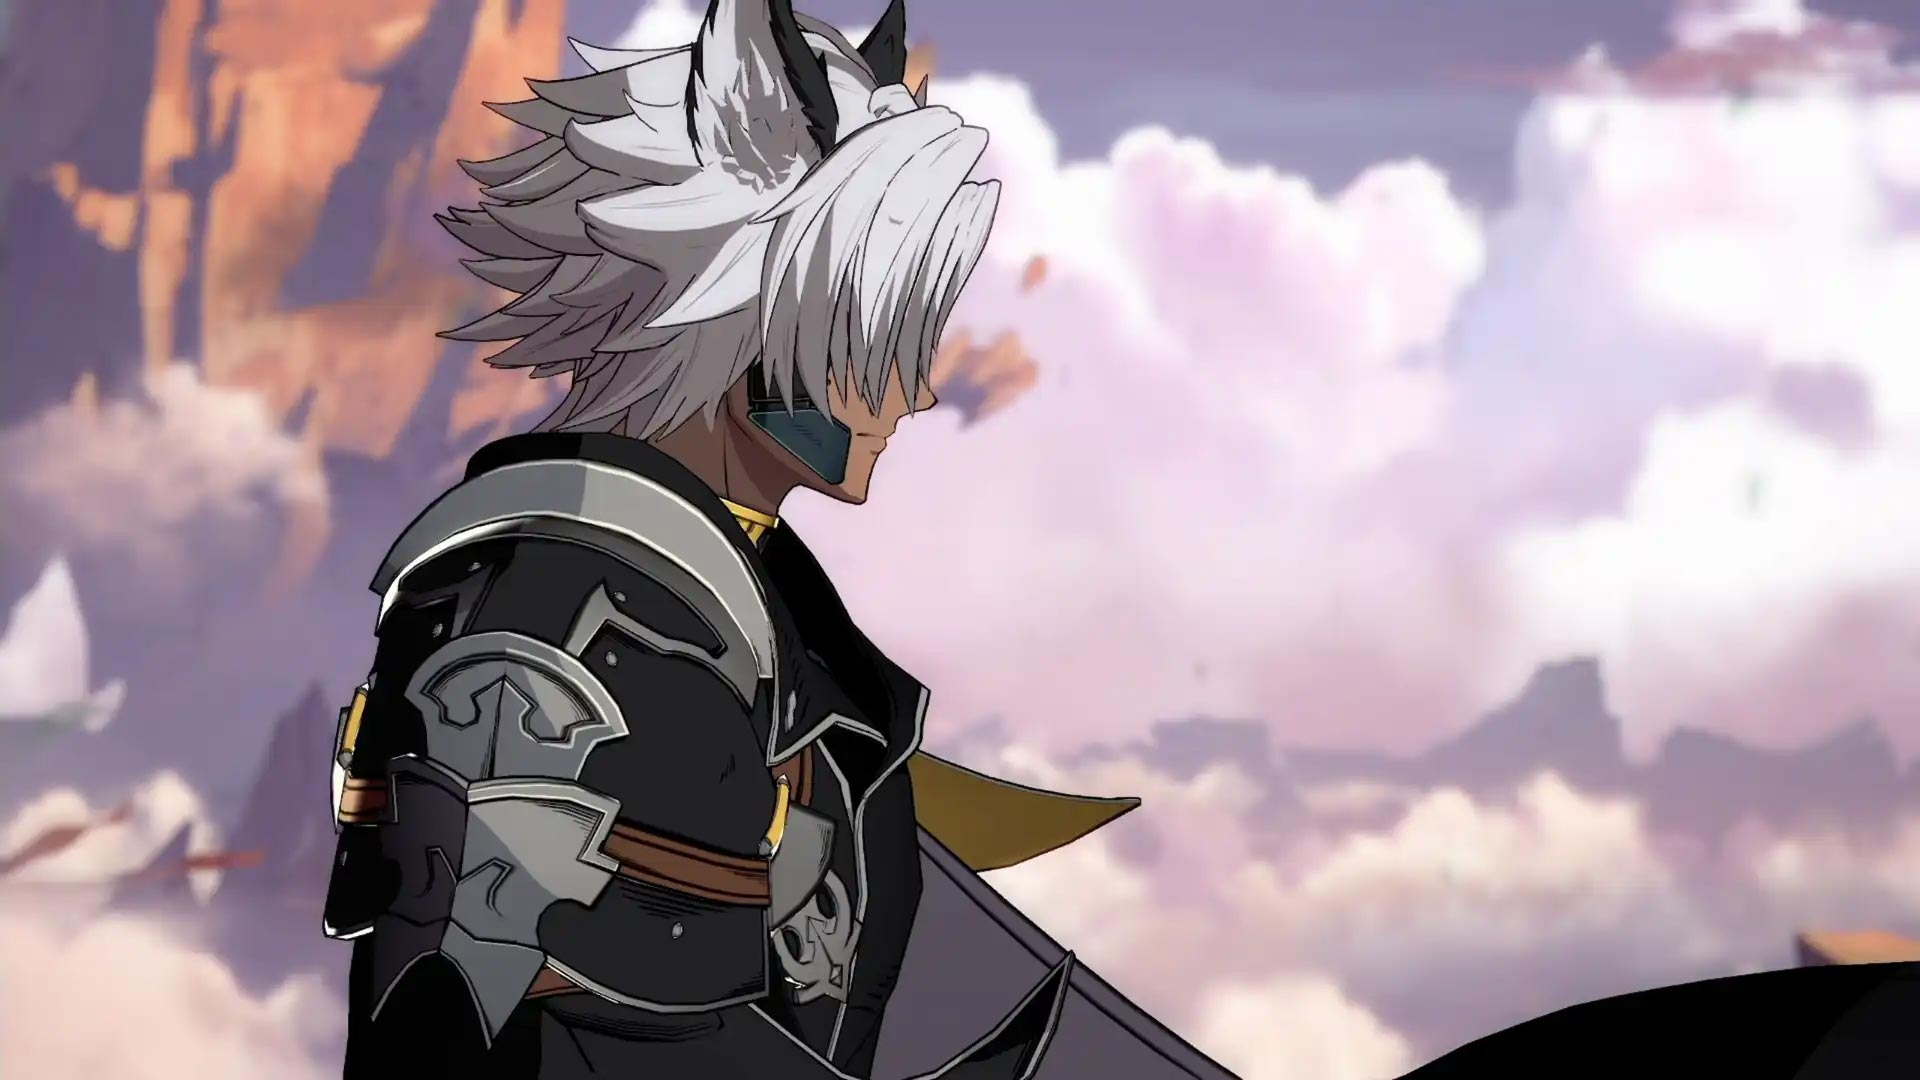 Granblue Fantasy Versus Eustace Reveal Trailer Gallery 1 out of 11 image gallery